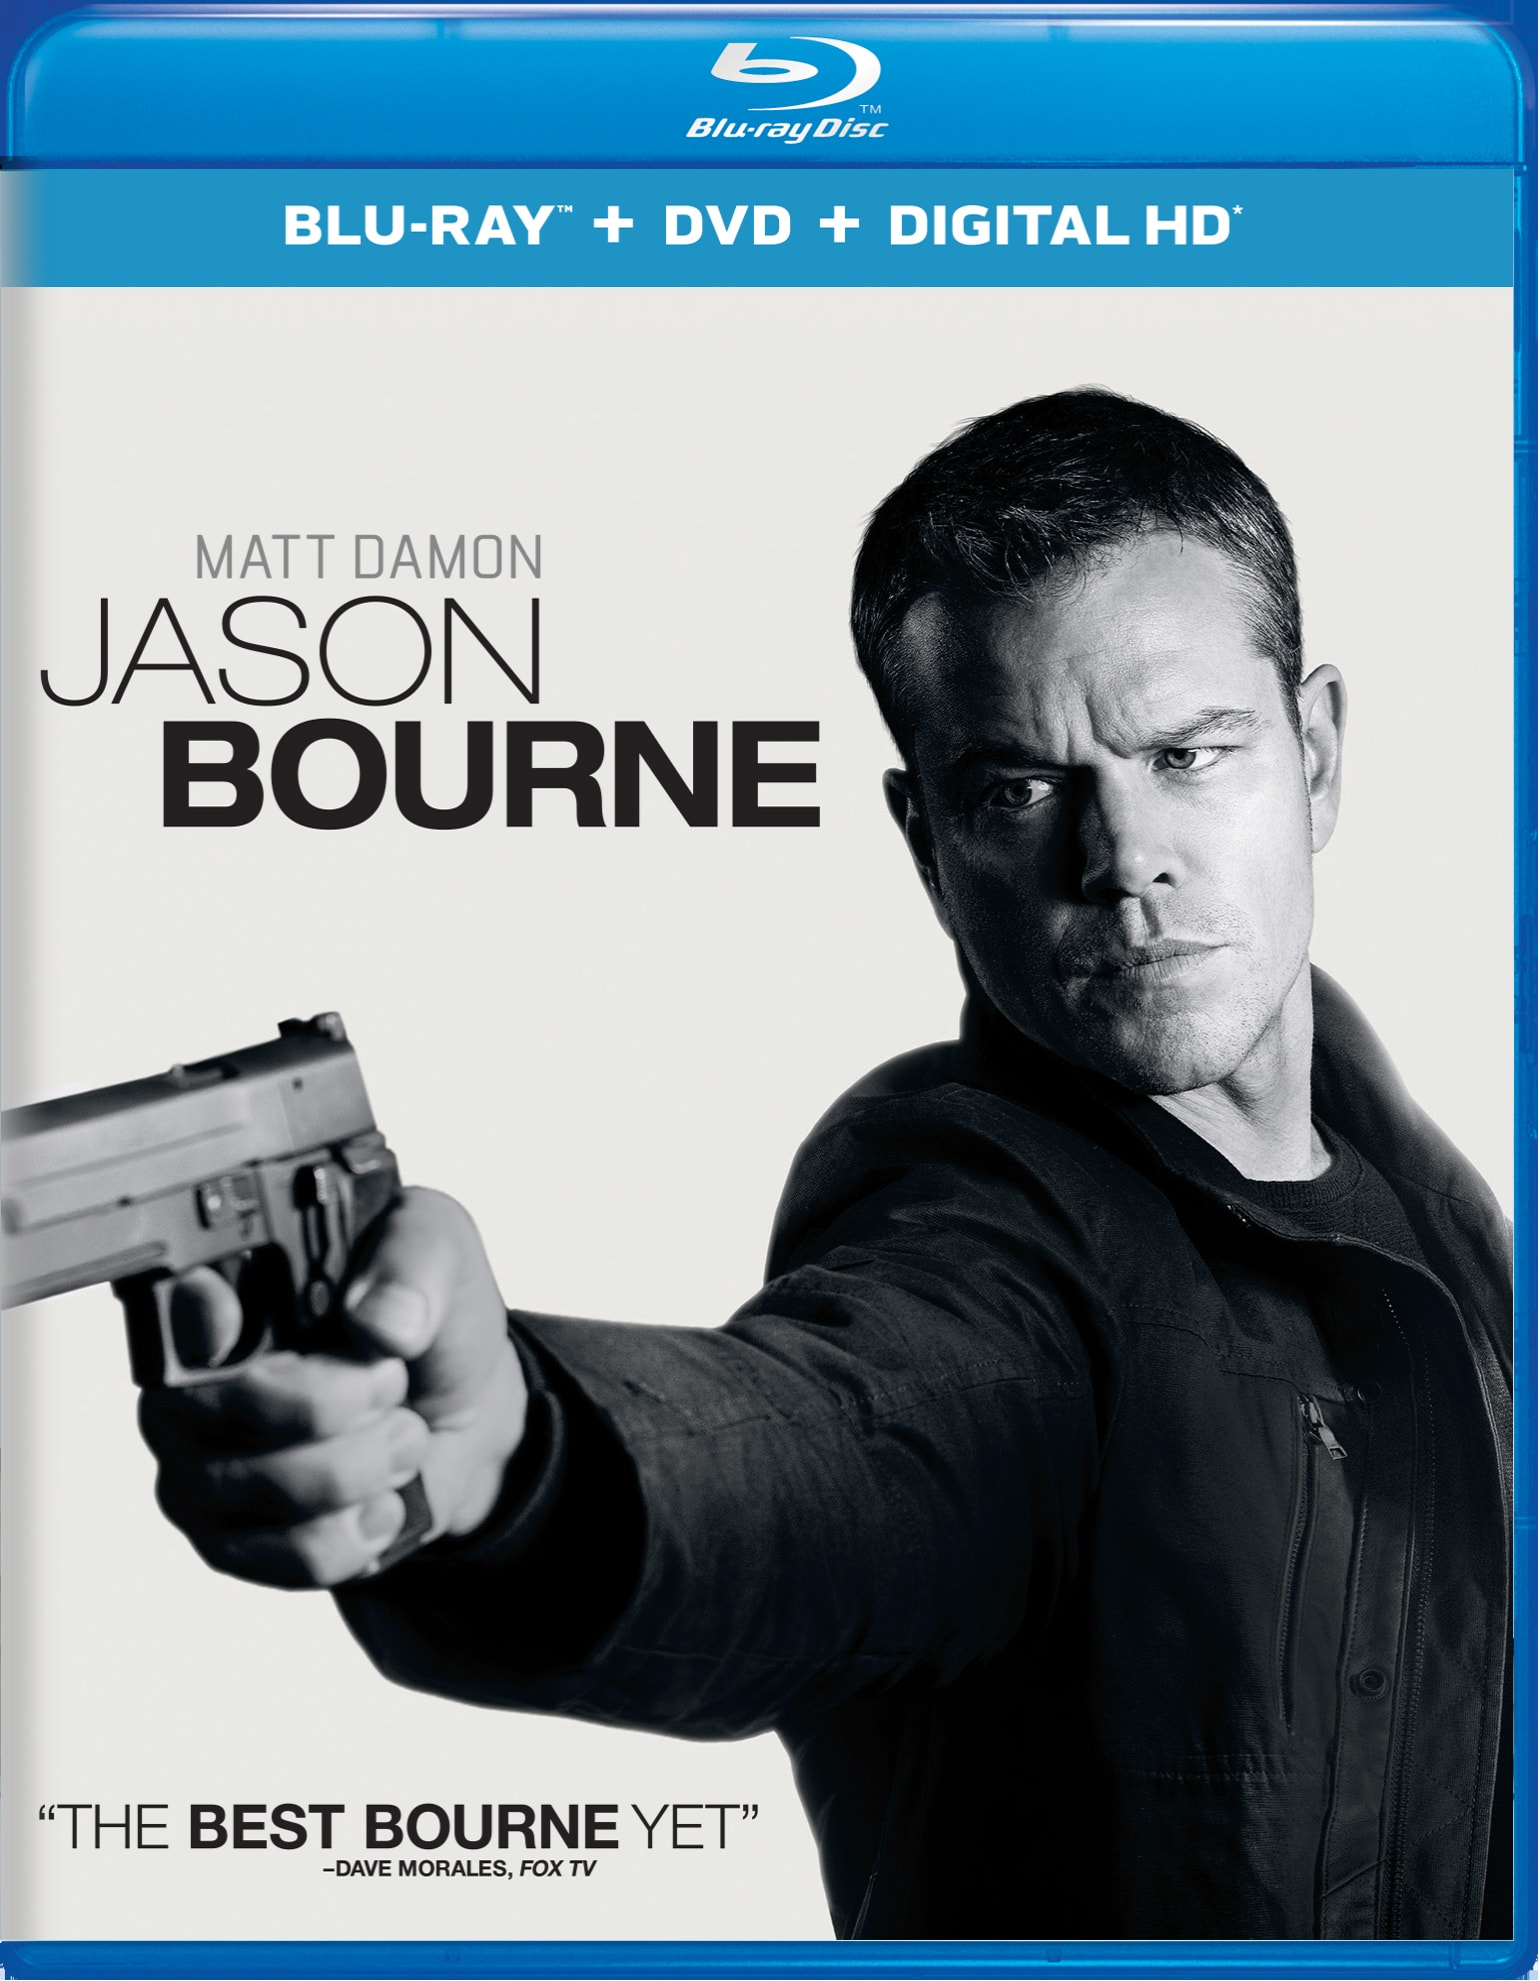 Jason Bourne (DVD + Digital) [Blu-ray]